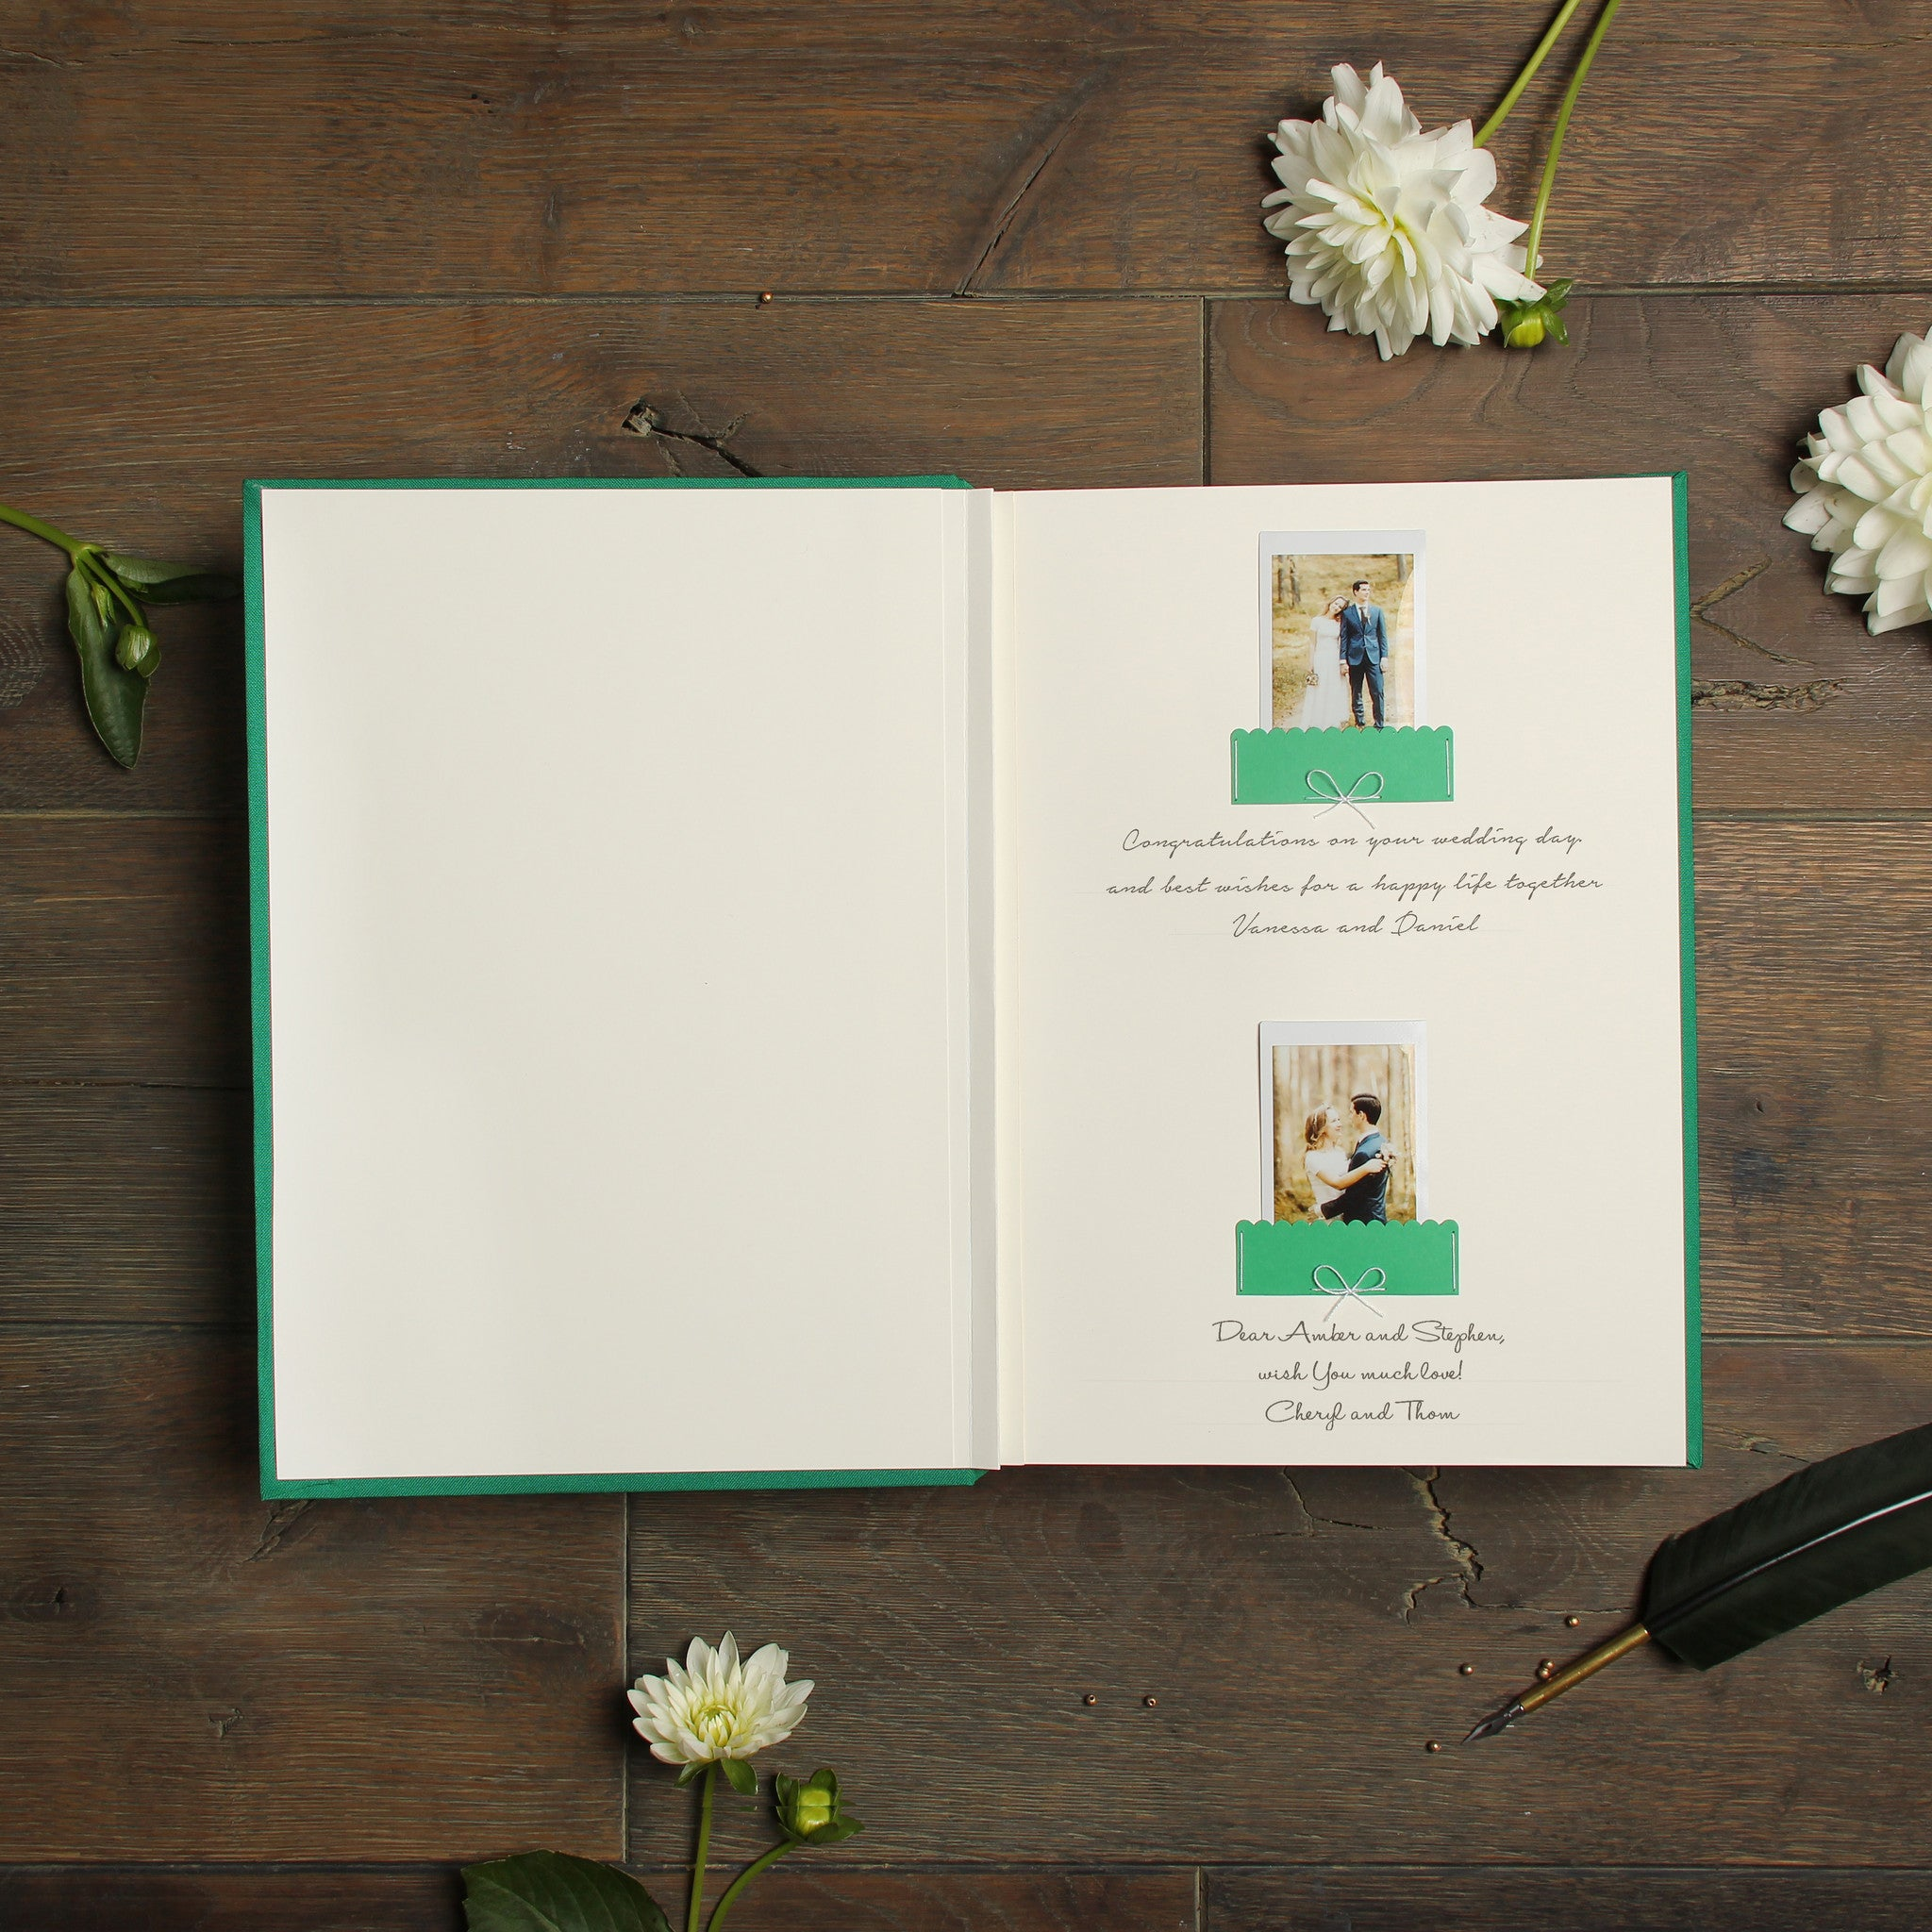 Instant Wedding Guest Book Album Shamrock Green with White Lettering by Liumy - Liumy